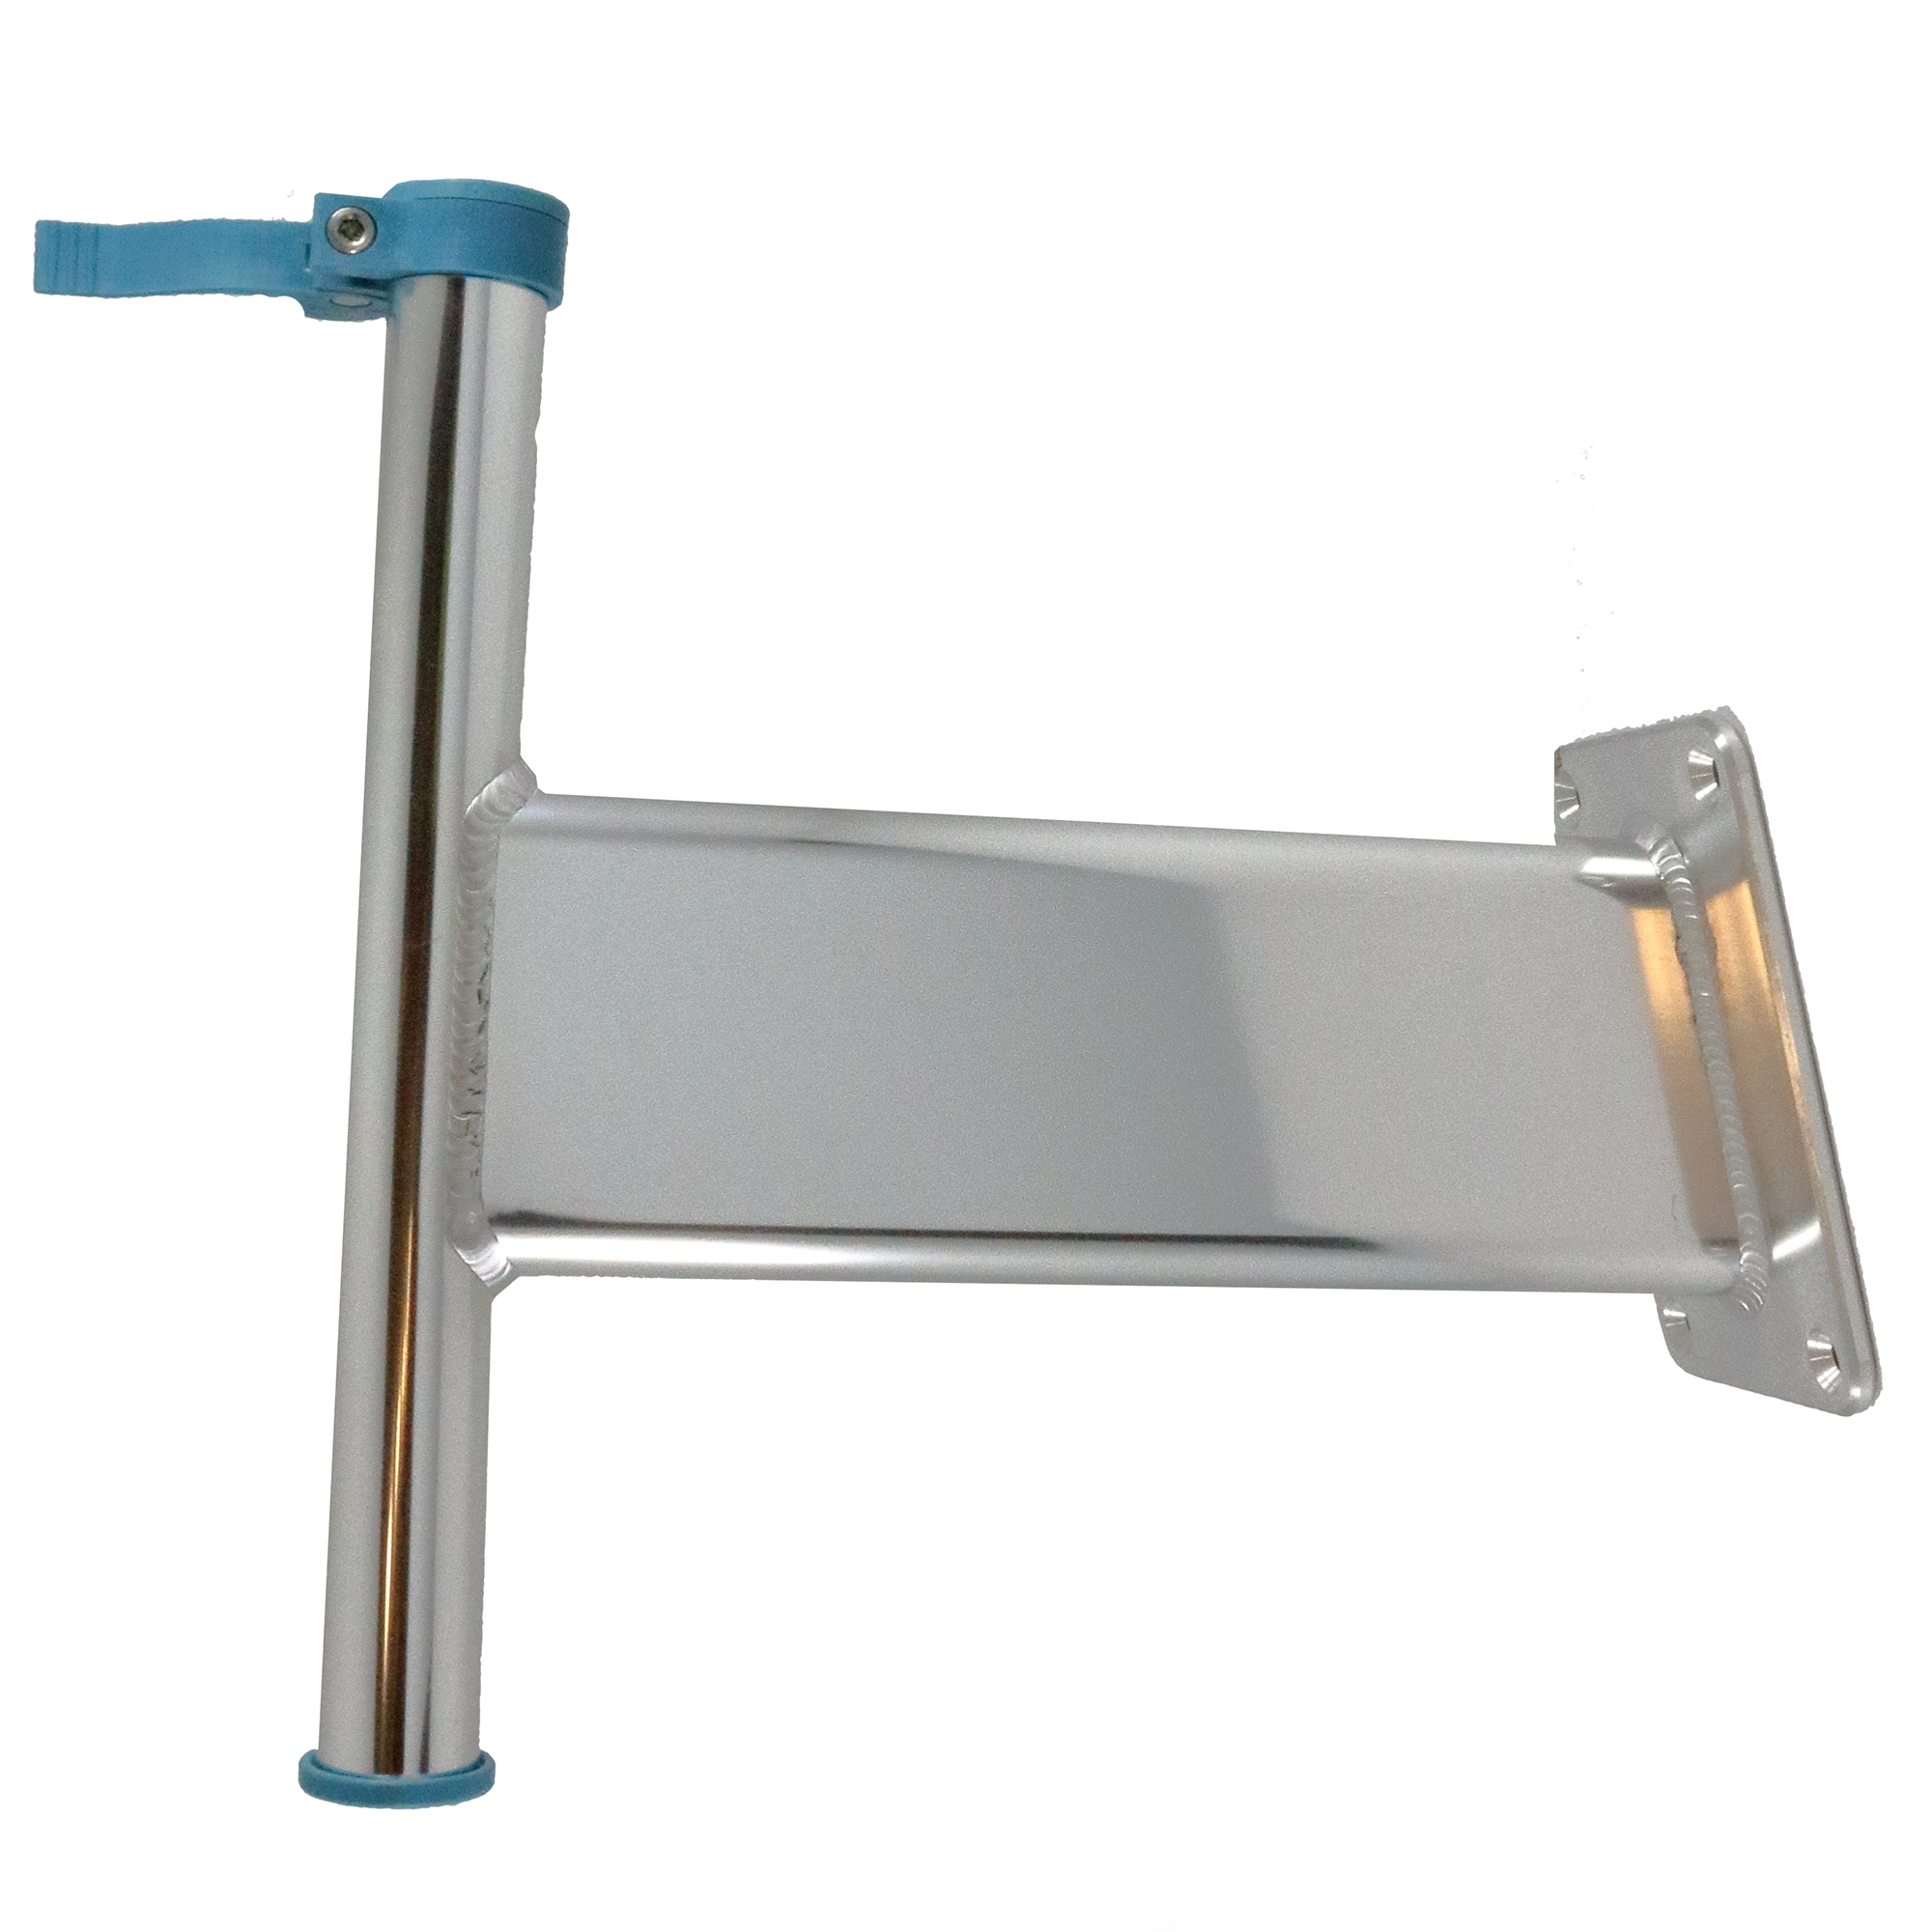 King Pin Transom-Mount Bracket, Clear Anodized Finish